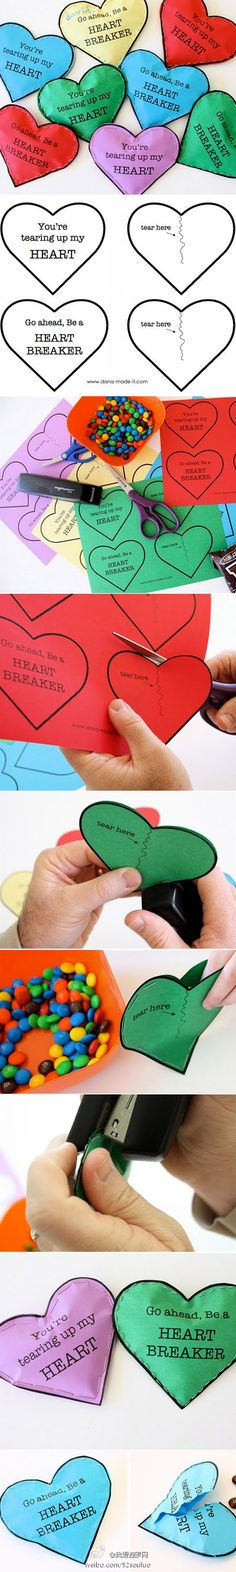 "Simple, easy Valentine pockets. ""You're a heart breaker"" theme. Tear up paper to get to candy."